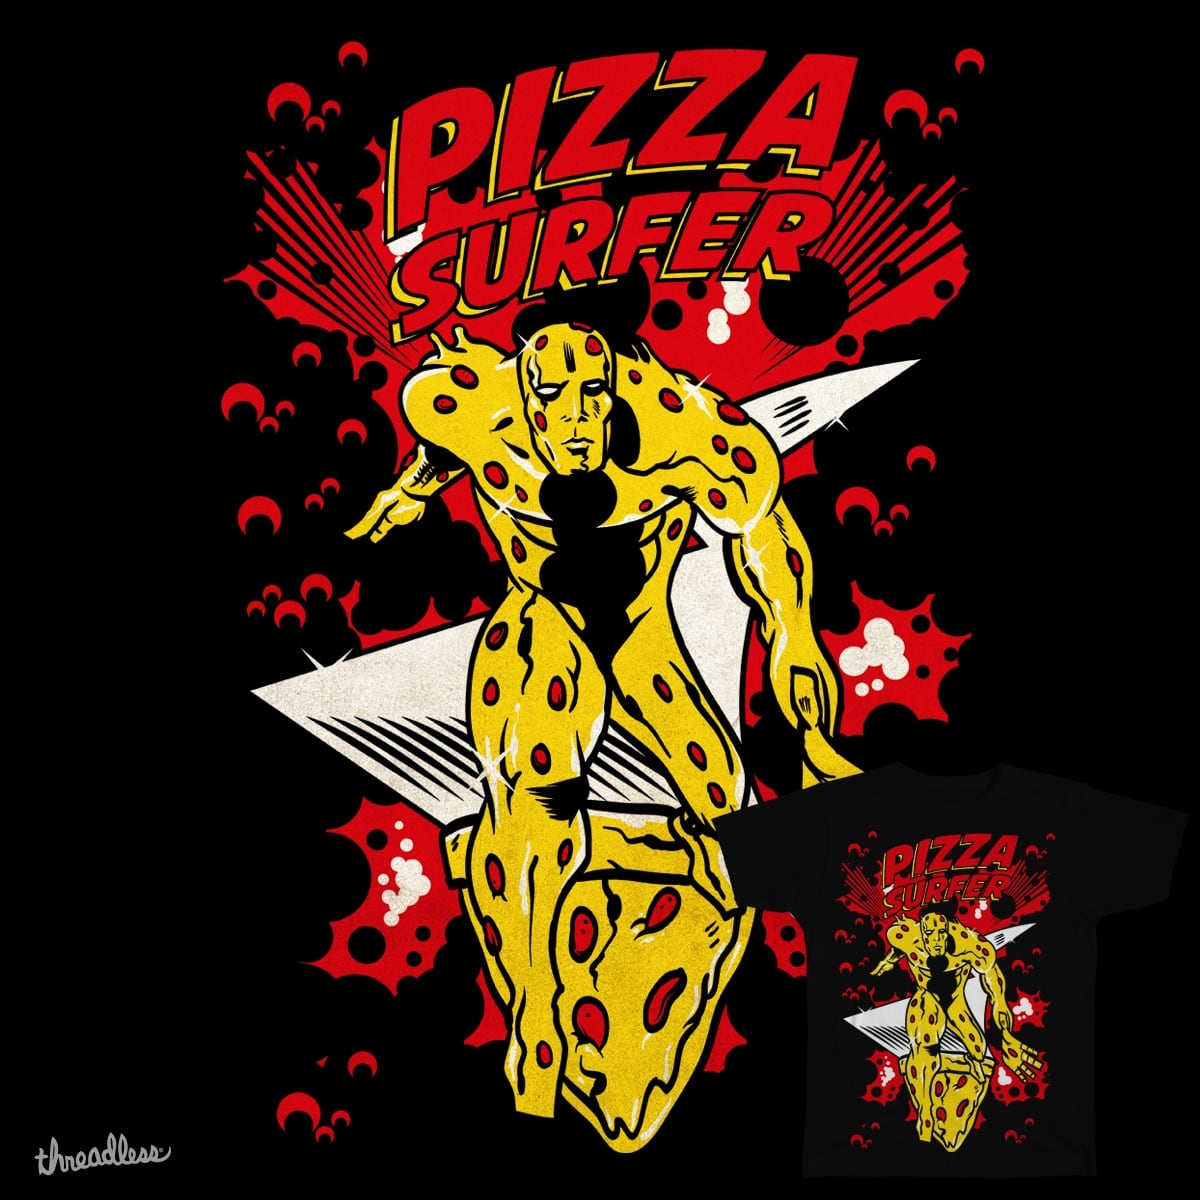 Score PIZZA SURFER by humandefect1989 on Threadless